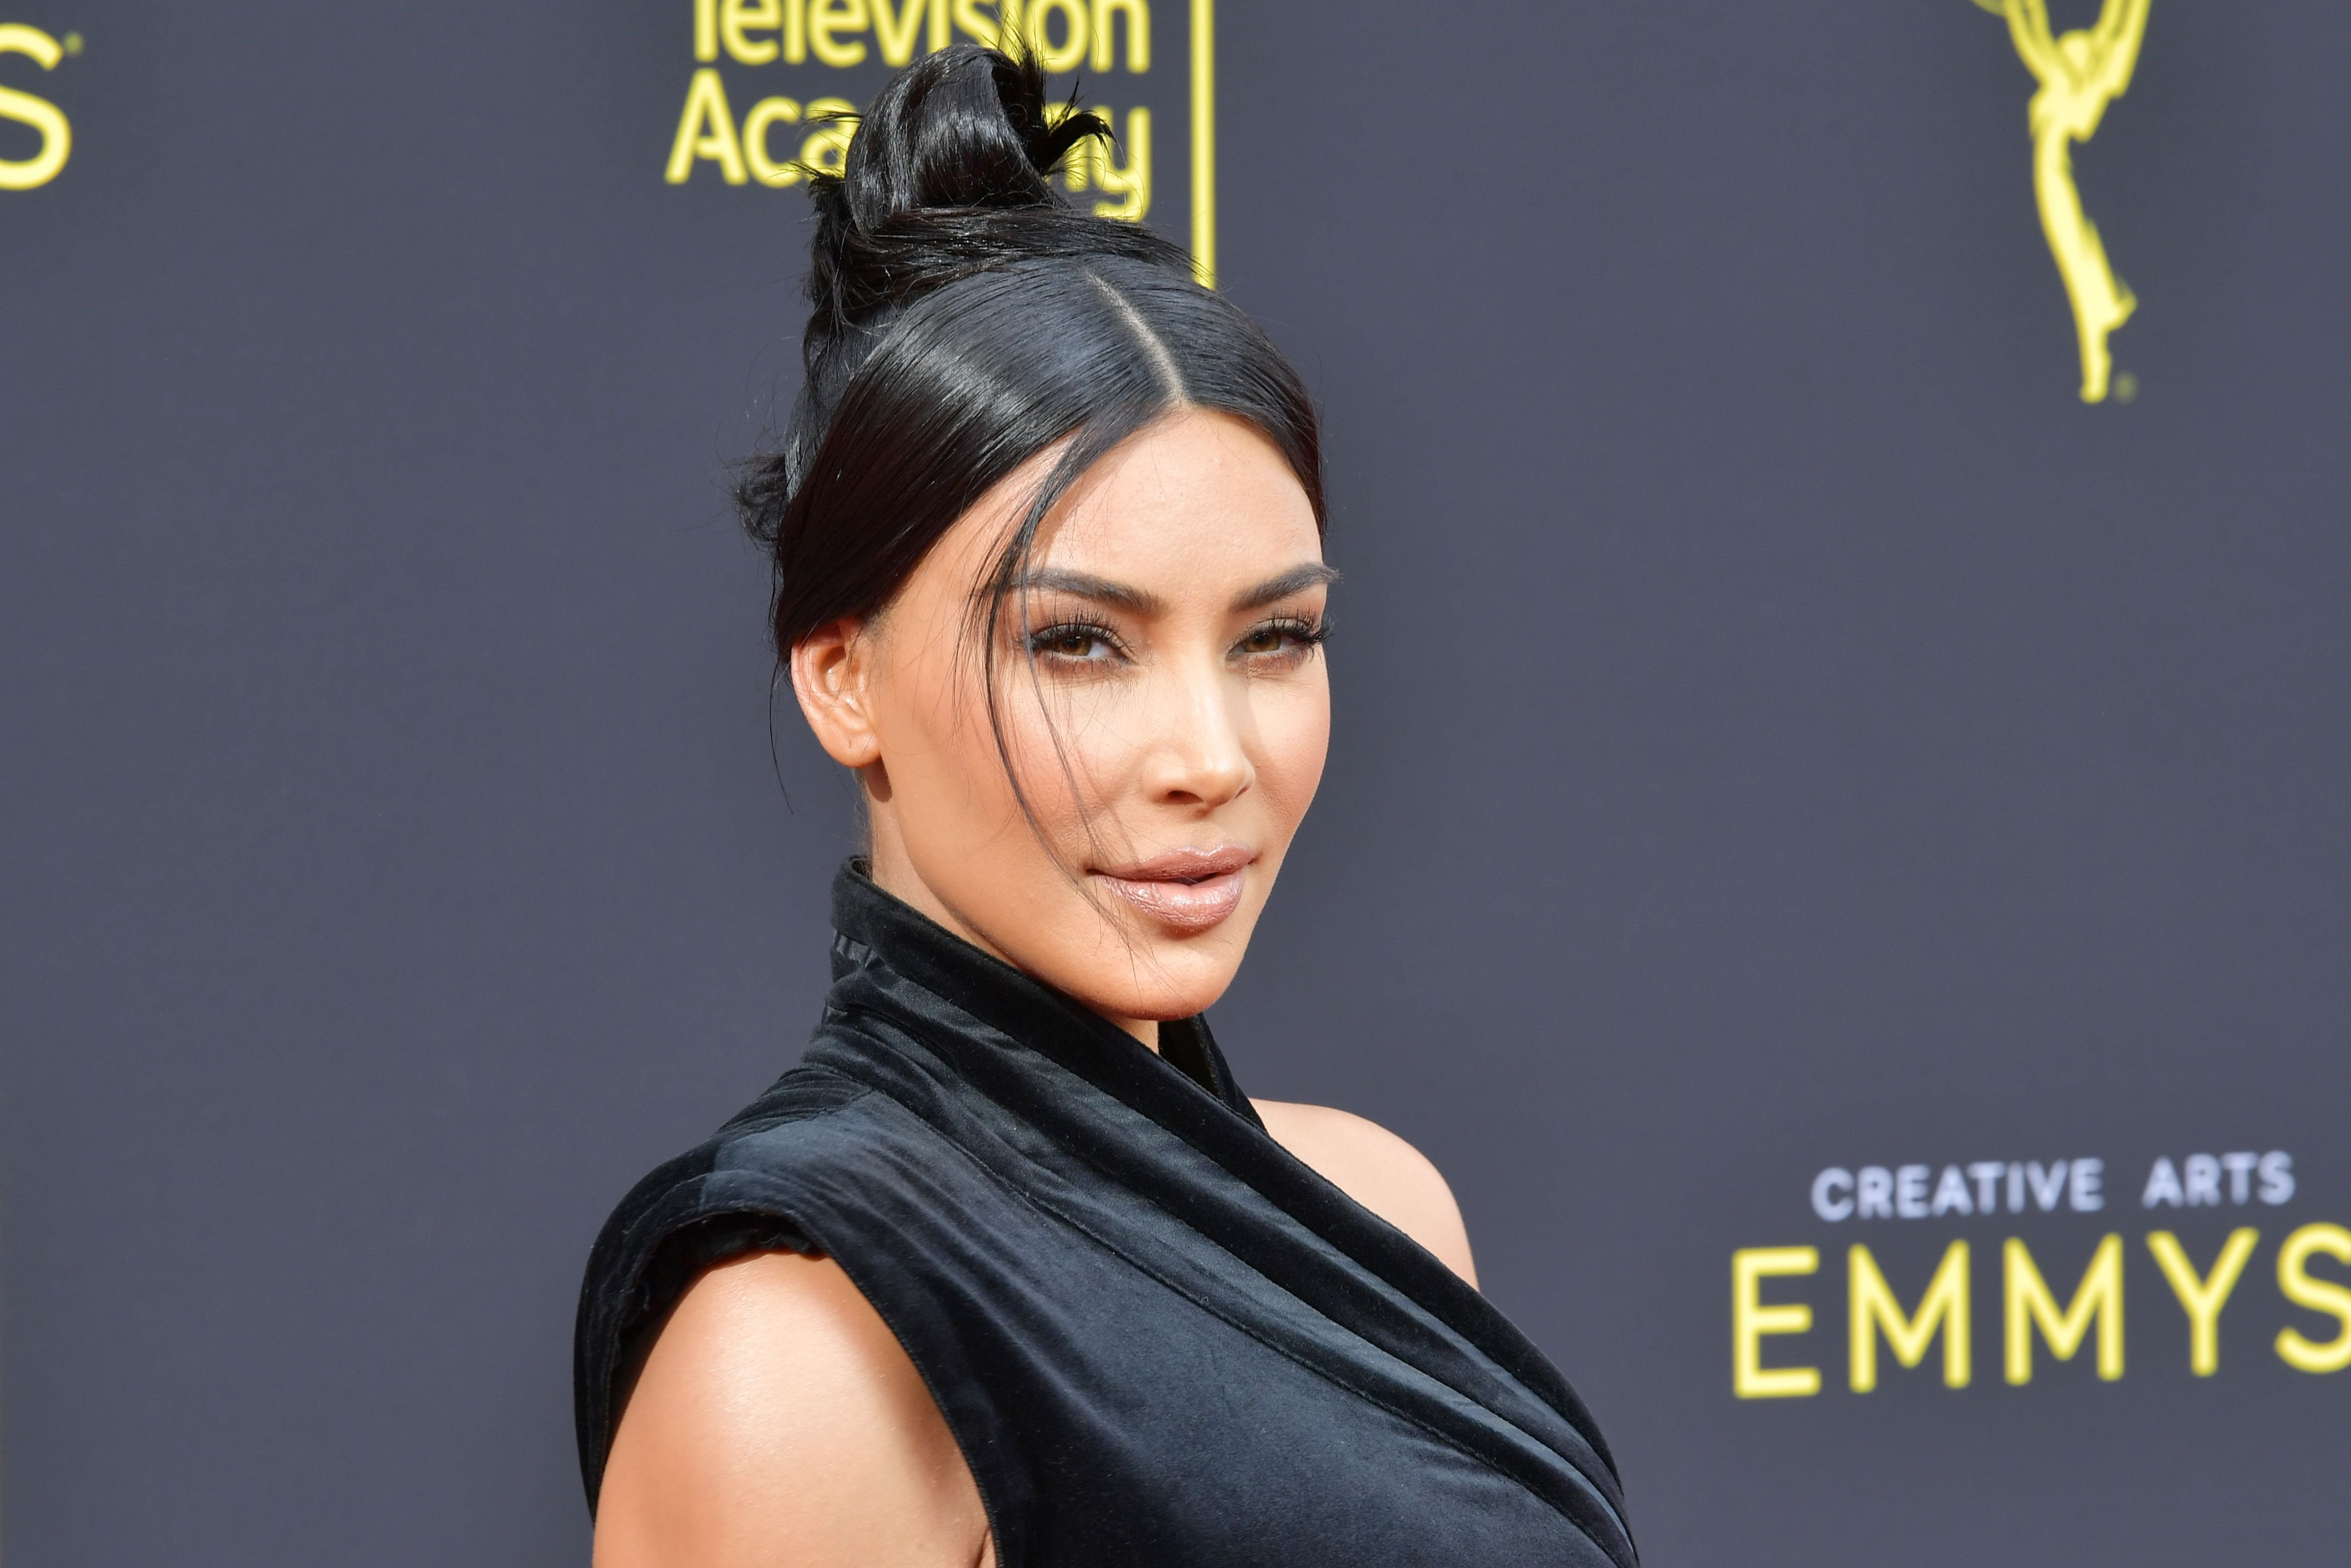 Kim Kardashian at the Creative Arts Emmy Awards in 2019, in Los Angeles, California | Source: Getty Images